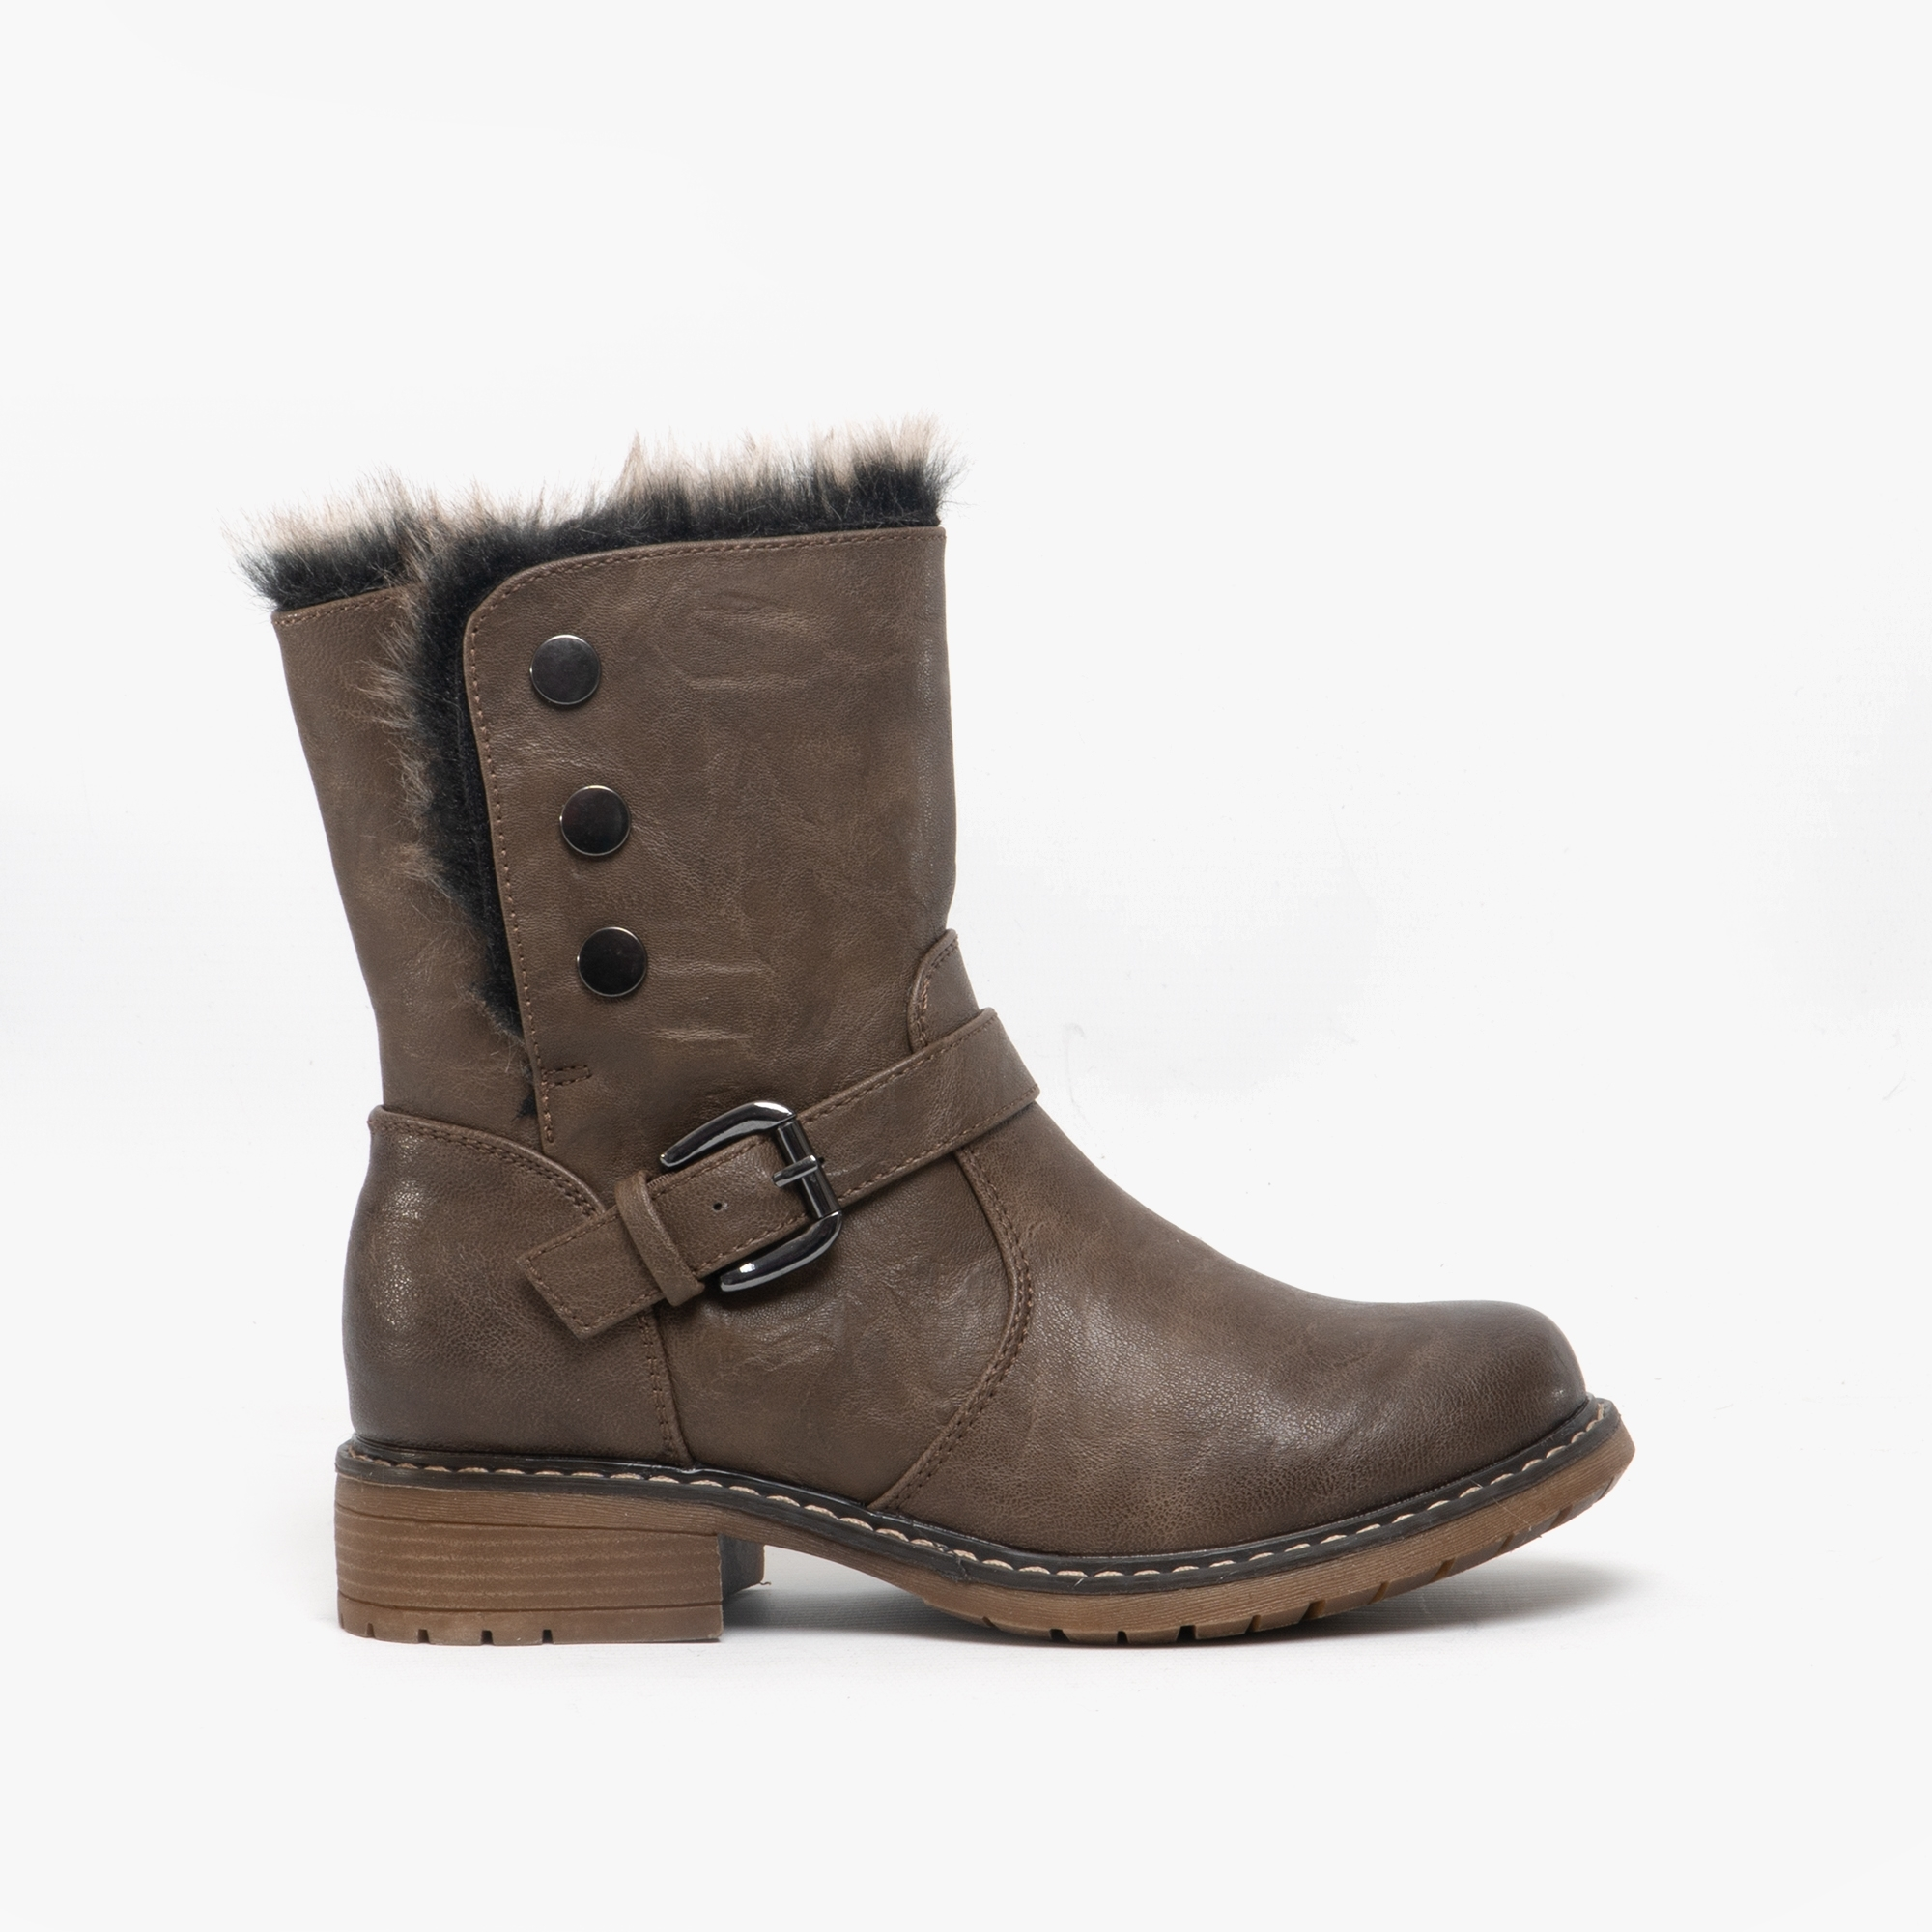 Cipriata ANDREANA Girls Faux Fur Lined